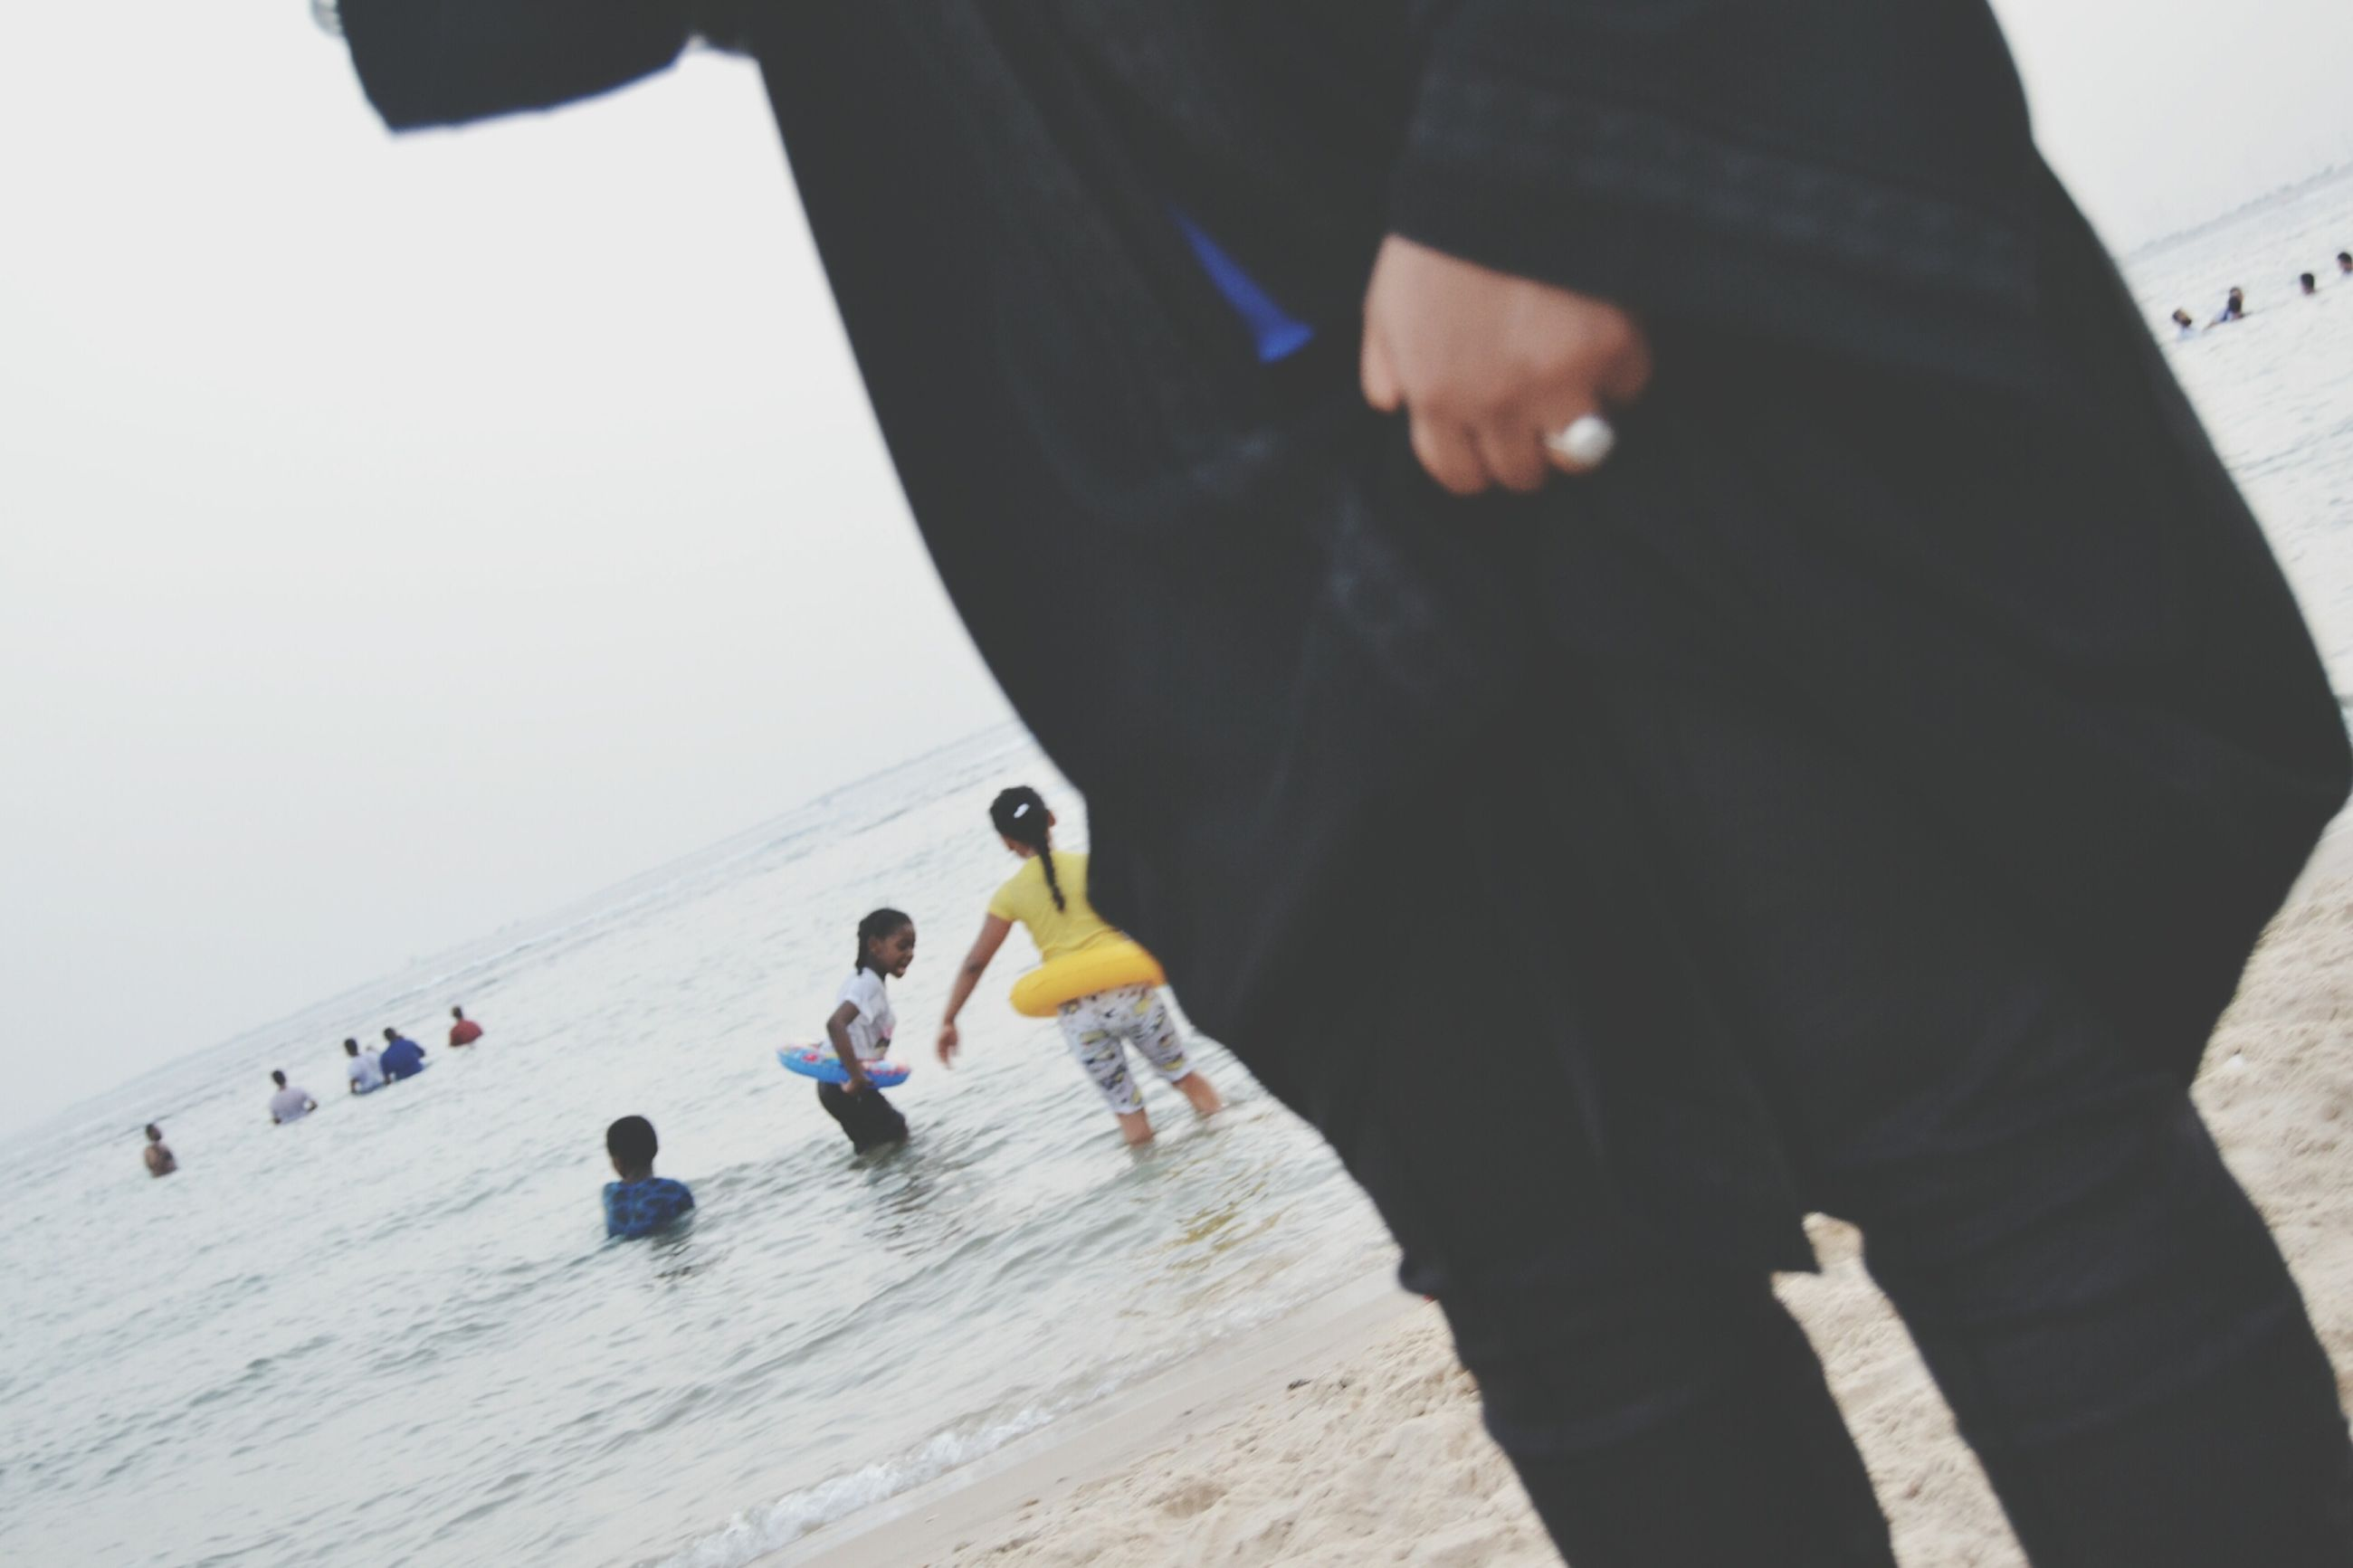 lifestyles, leisure activity, men, casual clothing, togetherness, person, childhood, full length, boys, bonding, holding, girls, enjoyment, standing, walking, vacations, rear view